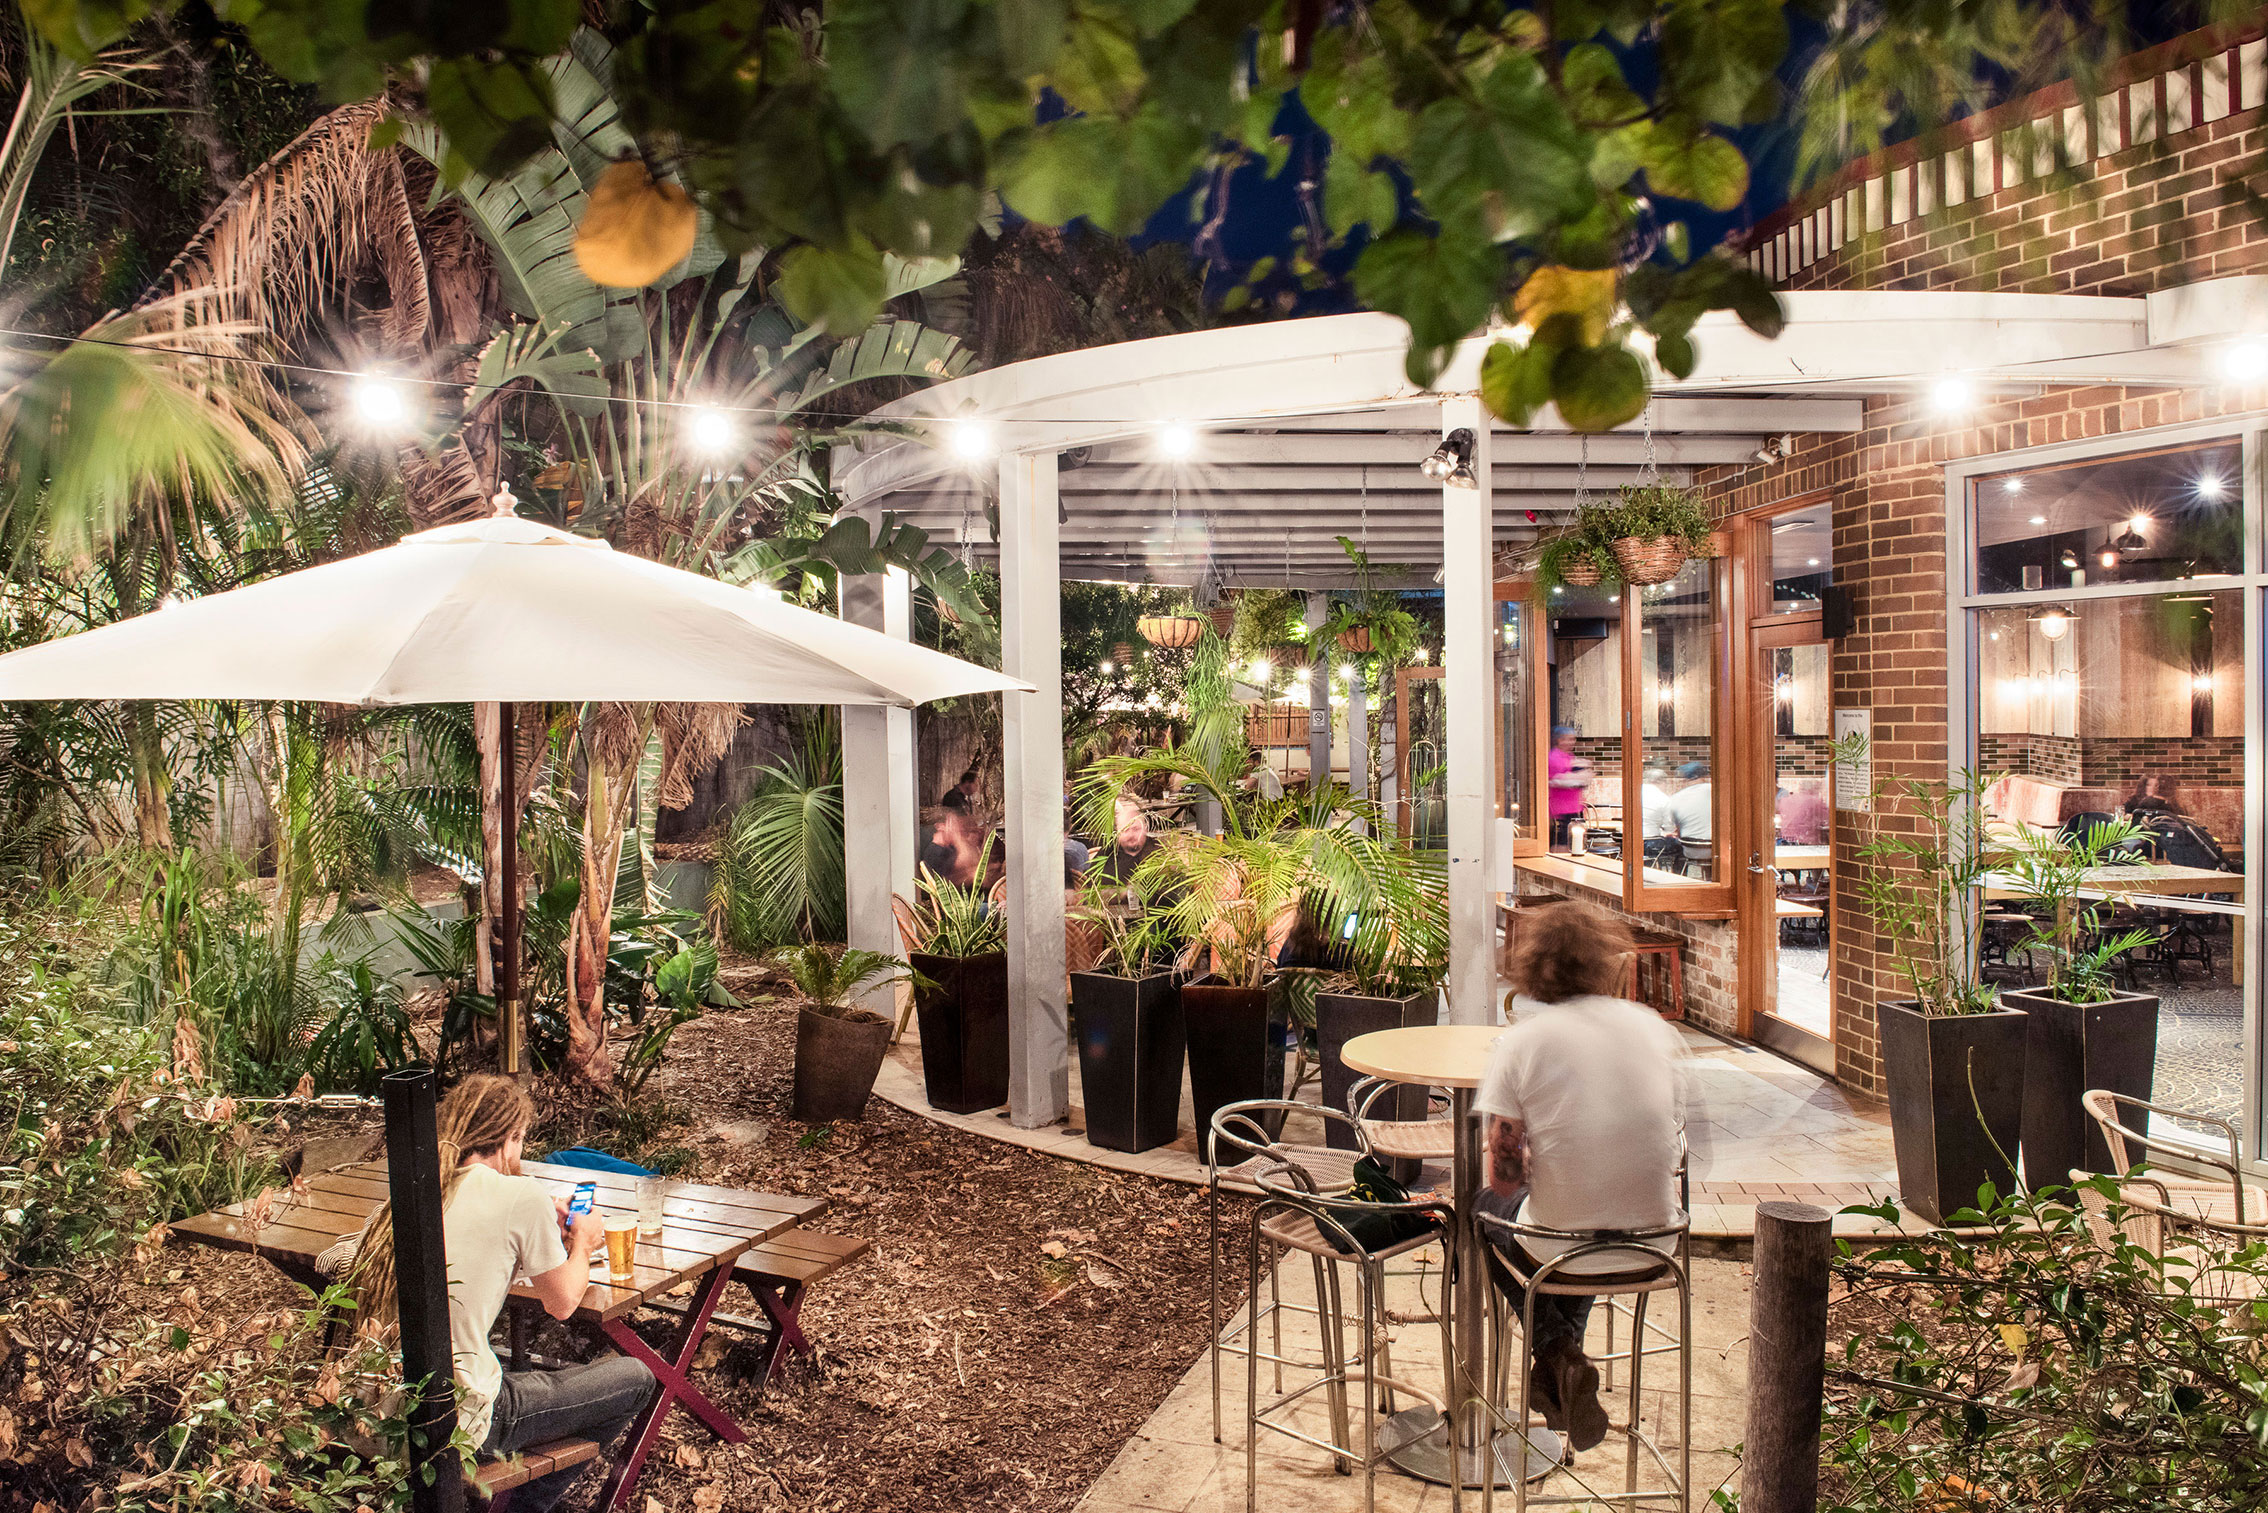 The 10 Best Beer Gardens in Sydney, Australia